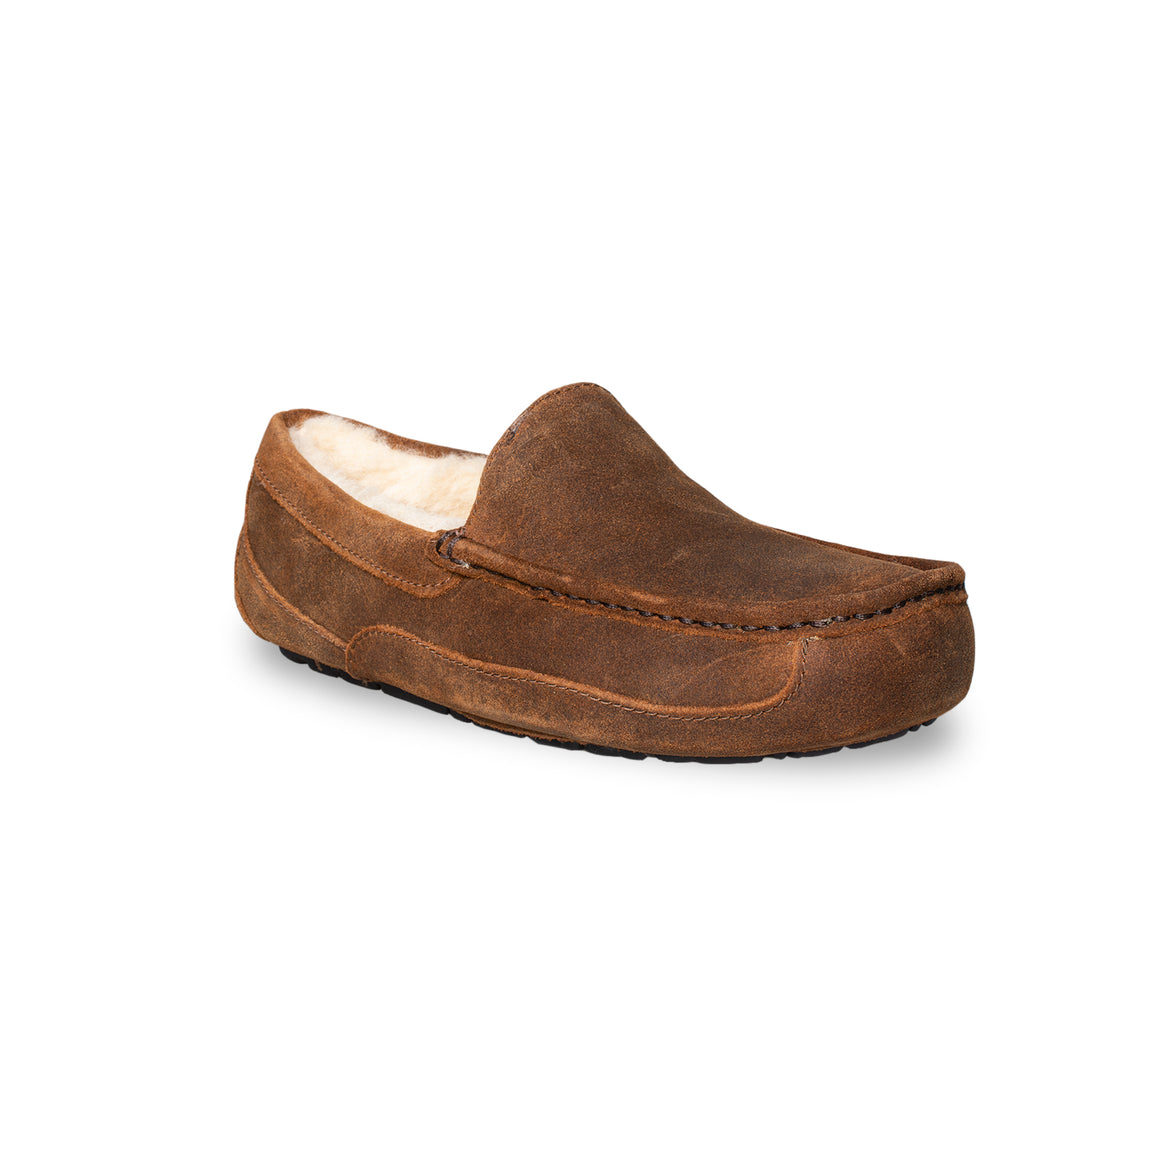 UGG Ascot Oiled Suede Chestnut Slippers - Men's